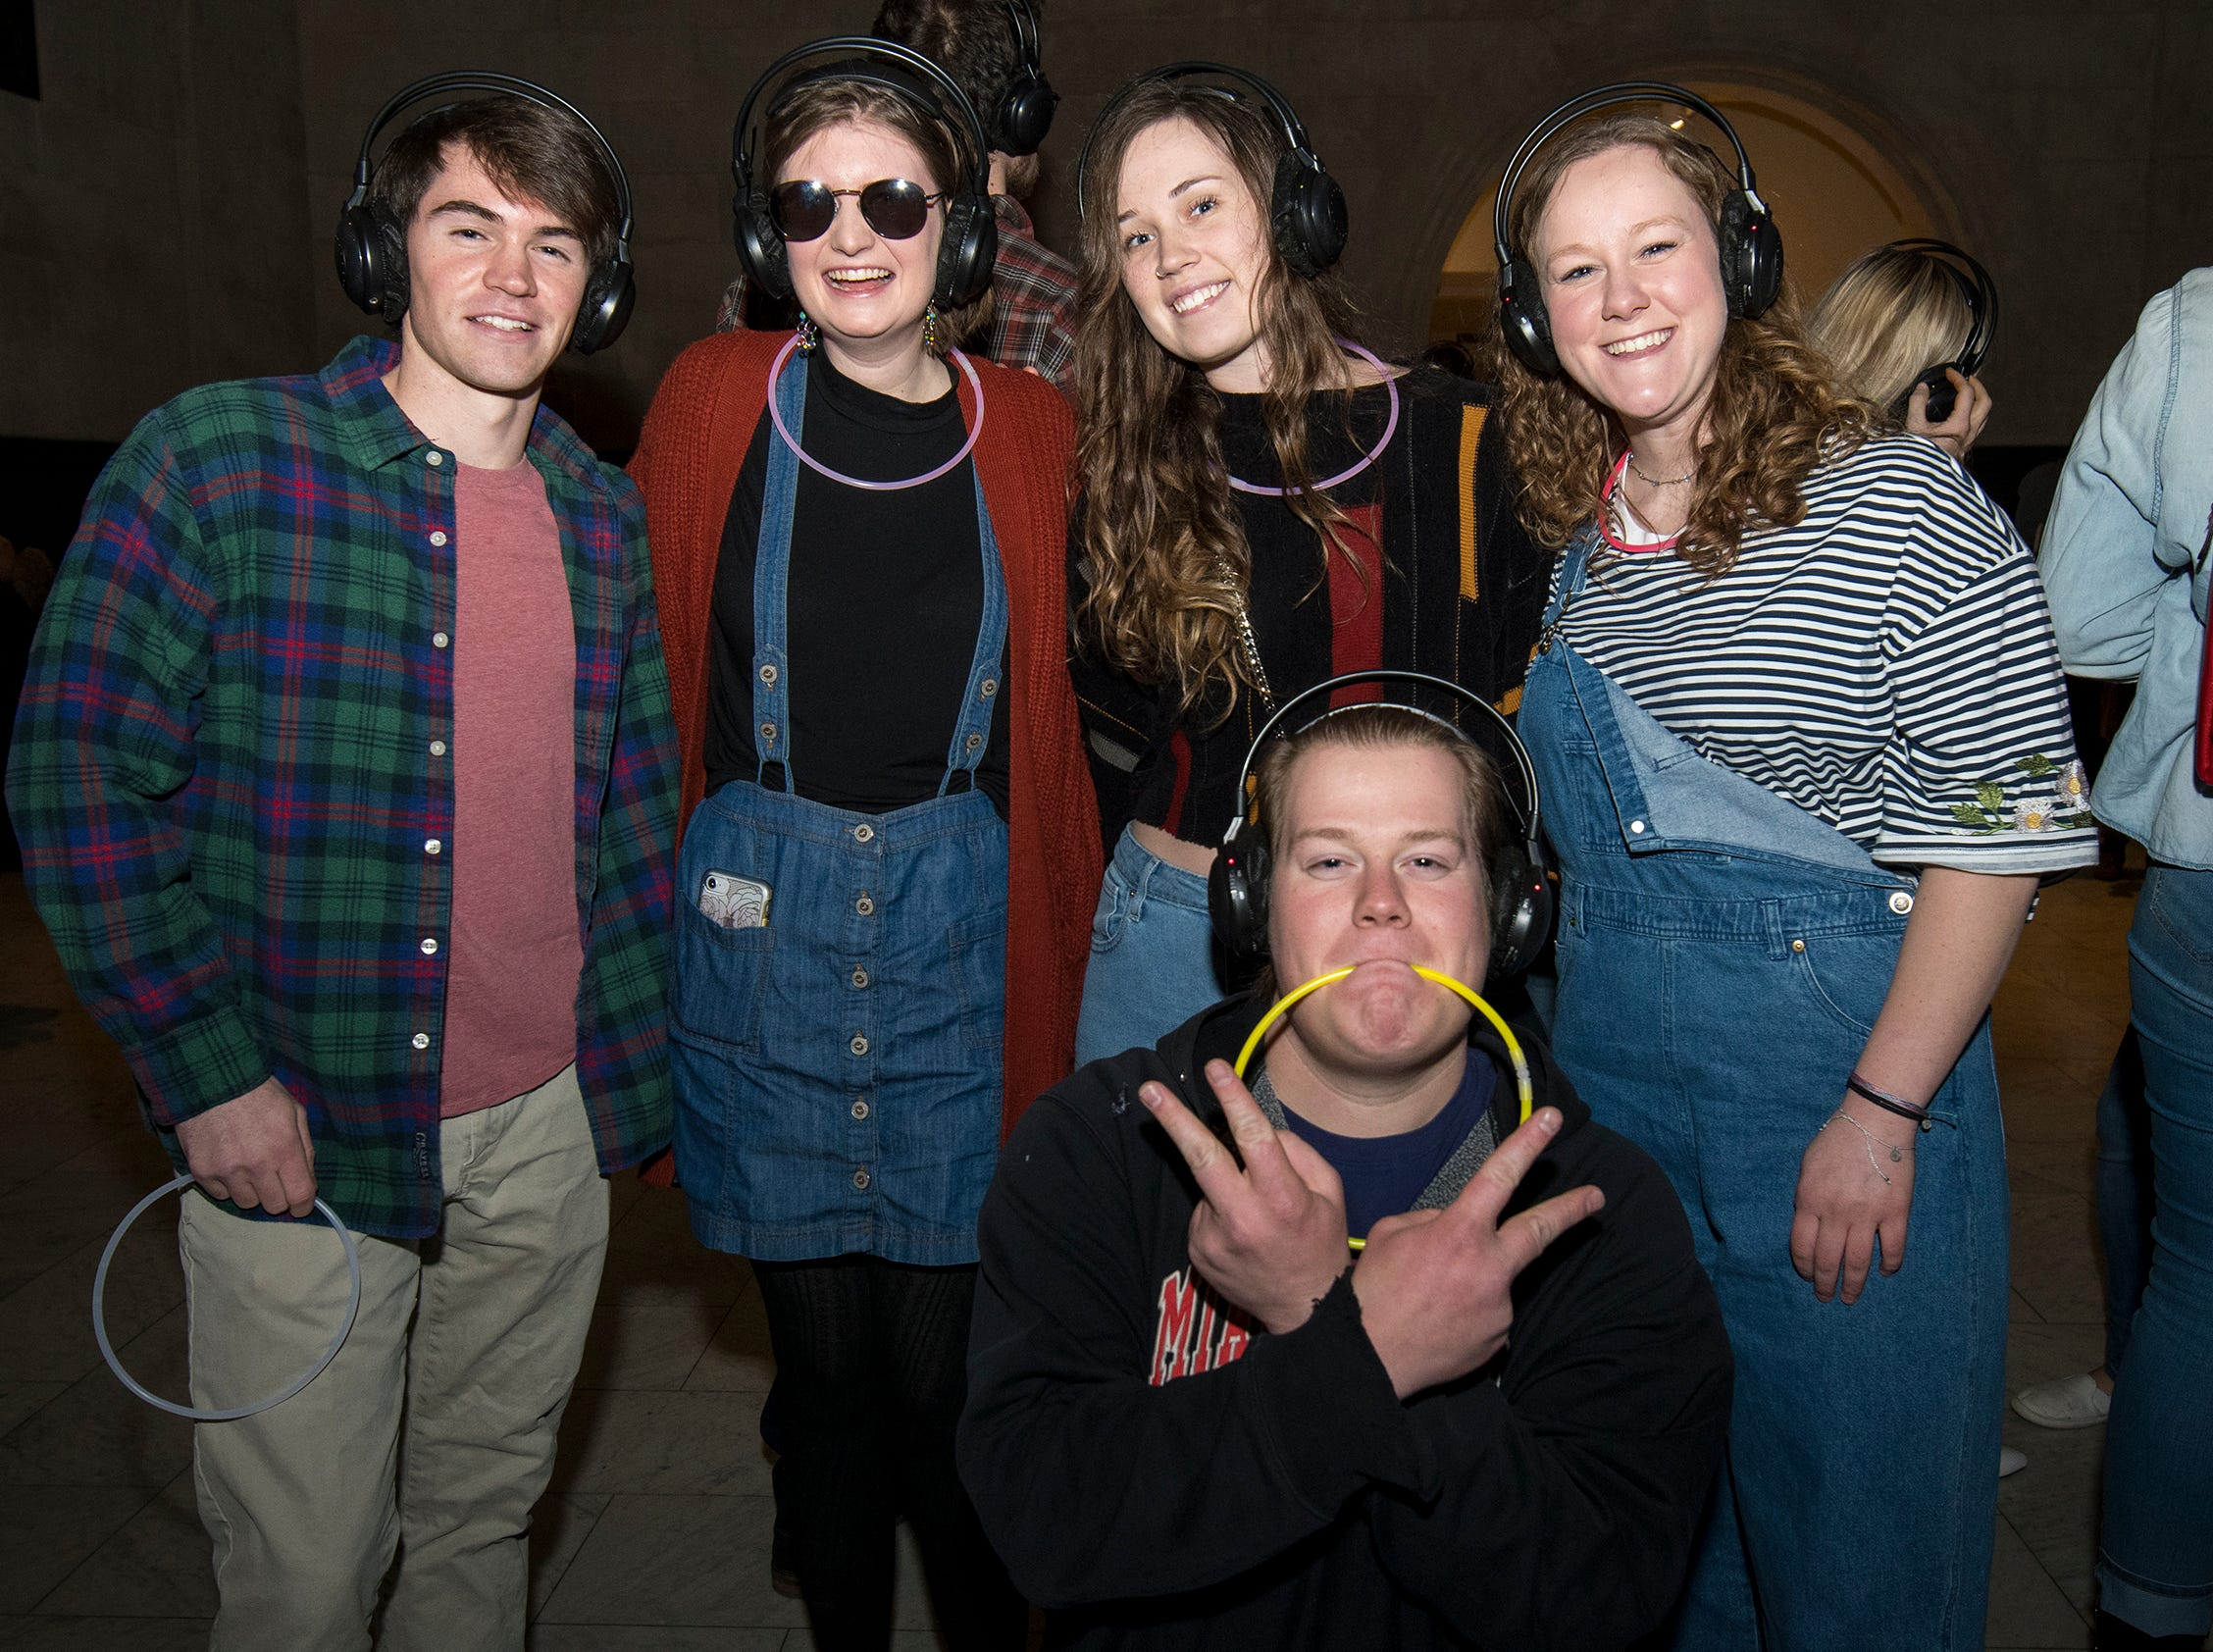 Al Cliffel, Joanie Findley, Lily Henry, Ravenna Rutledge and Paul Findley attend a 90s-themed silent disco during Art After Dark at the Cincinnati Art Museum Friday, January 25, 2019 in Cincinnati, Ohio.